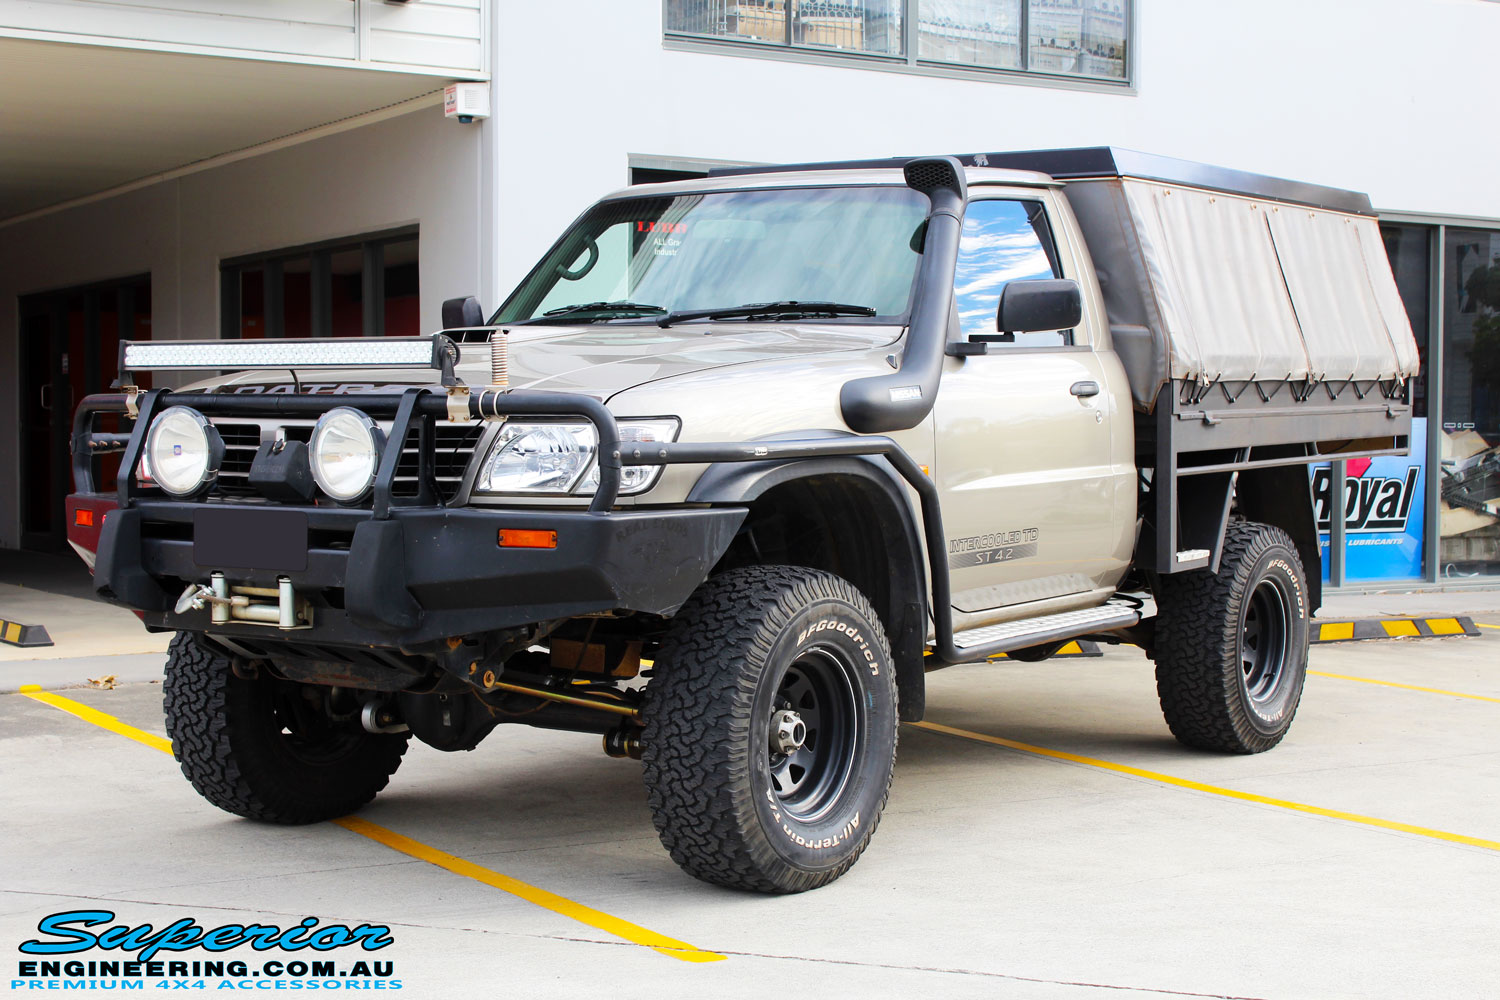 Left front side view of a Gold Nissan GU Patrol Ute being fitted with Superior Superflex Sway Bar Kit & a Superior Shock Tower Kit